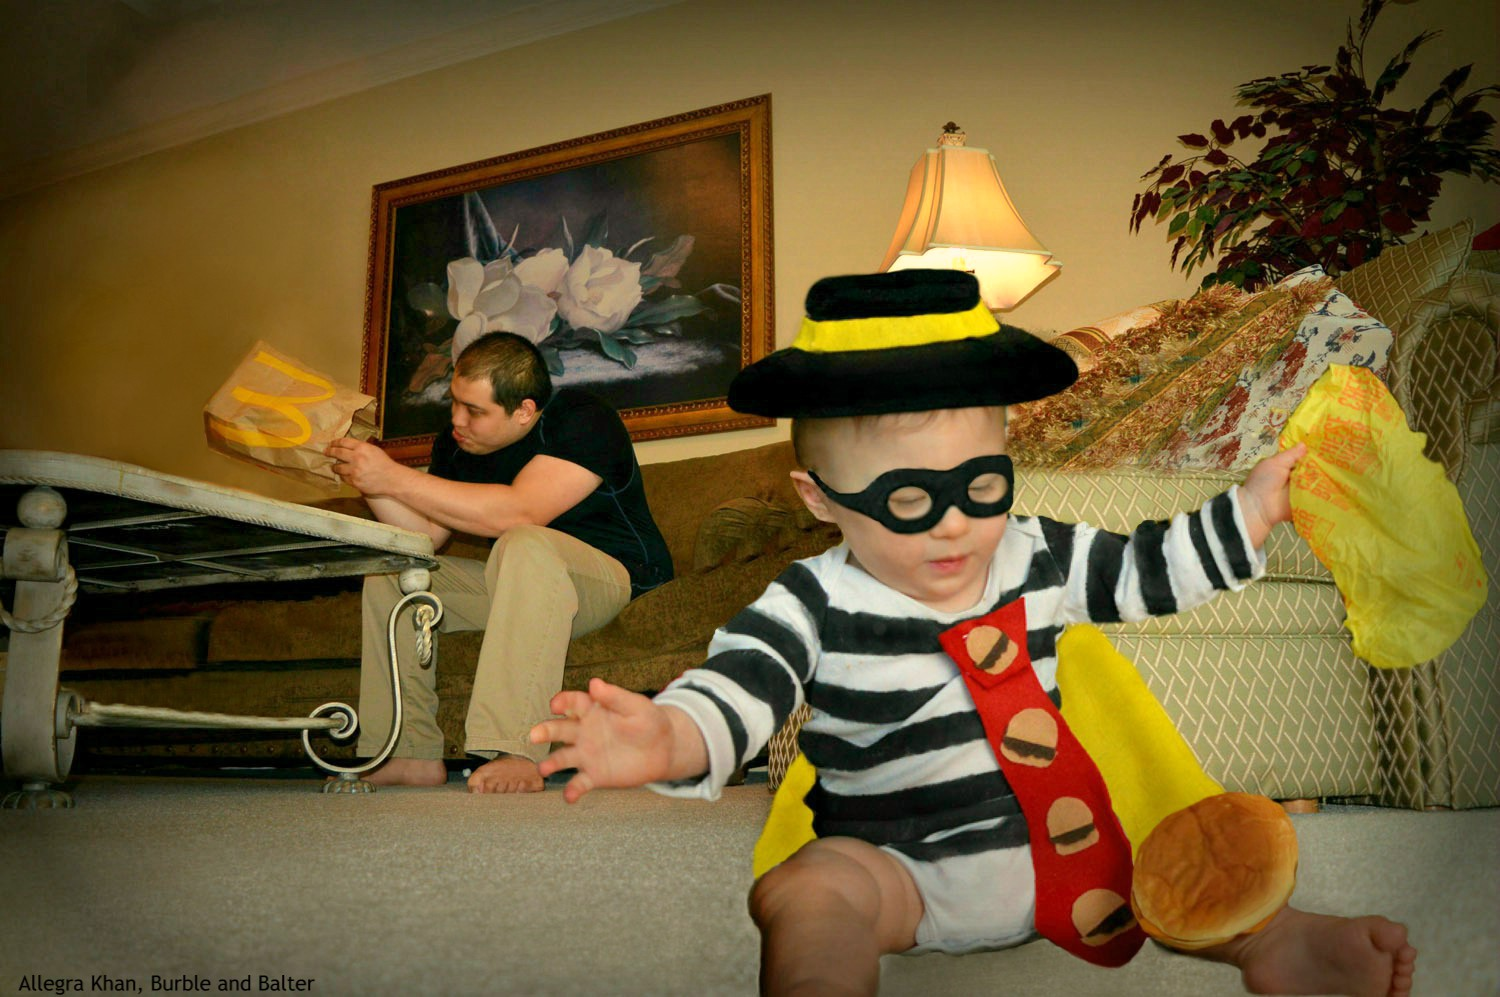 Hamburglar-5-Photoshoot-Costume-Burble-and-Balter.jpg